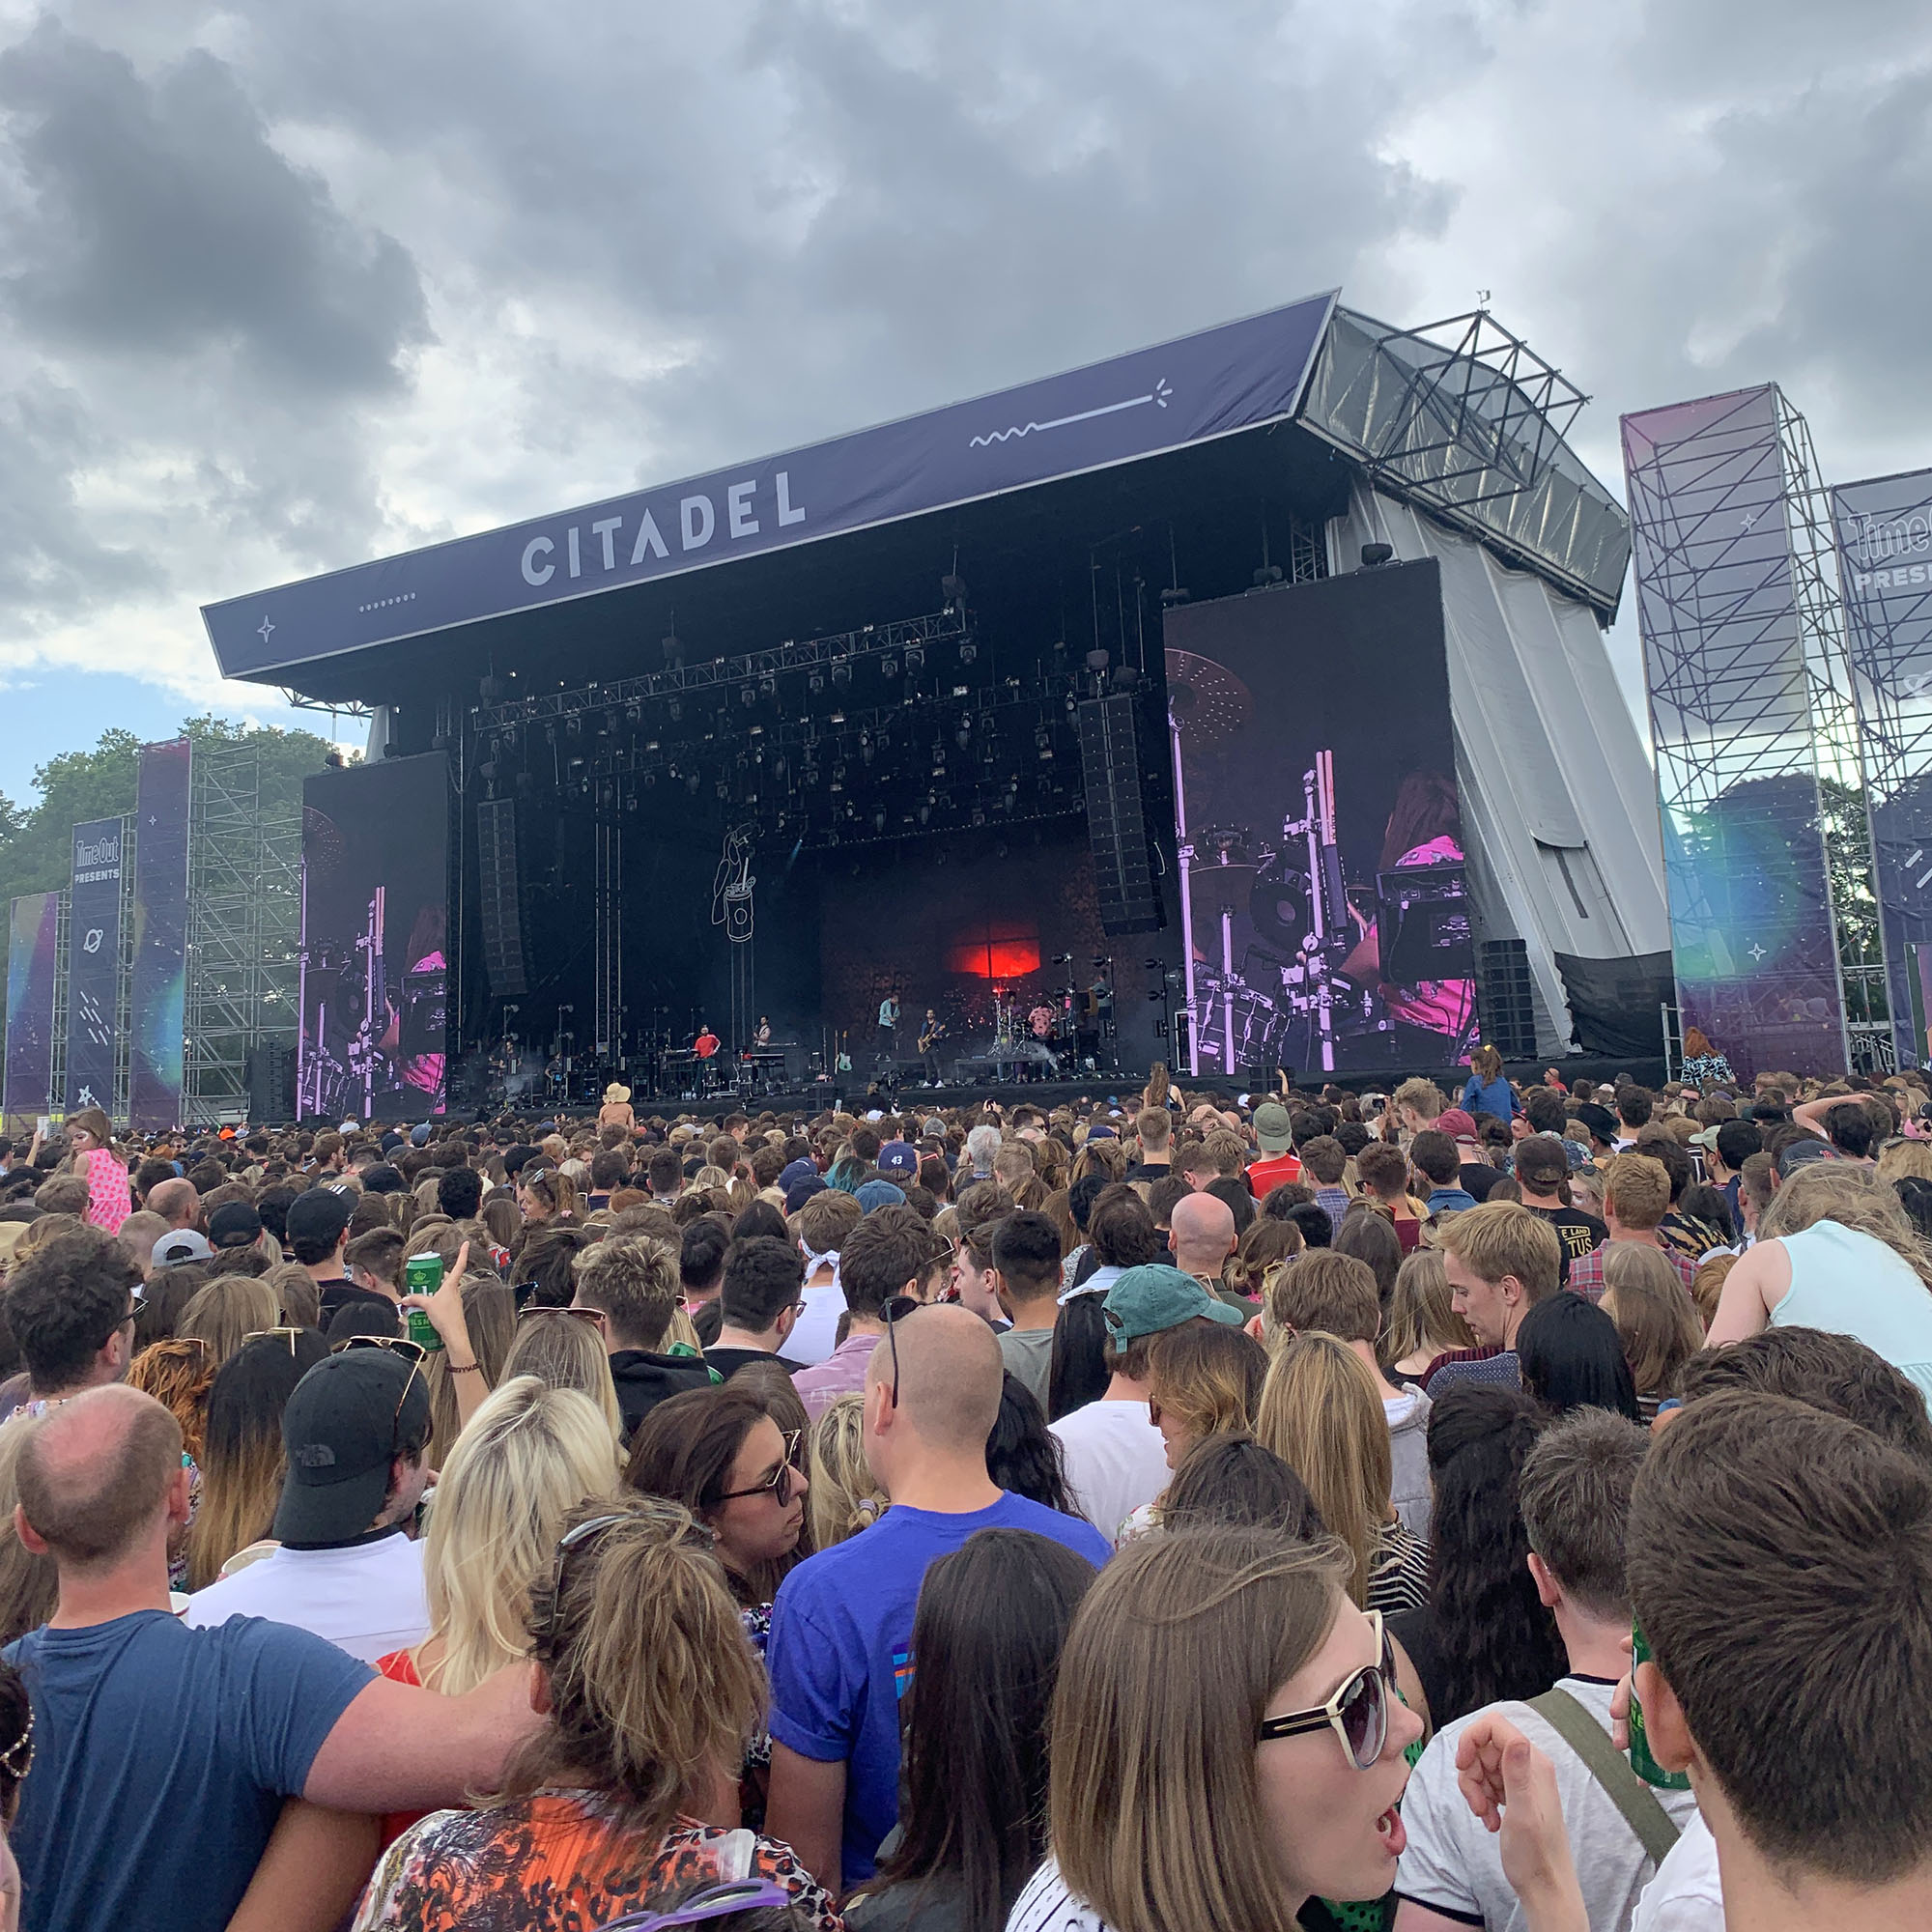 Who else was at the   CitadelFestival  2019 ?